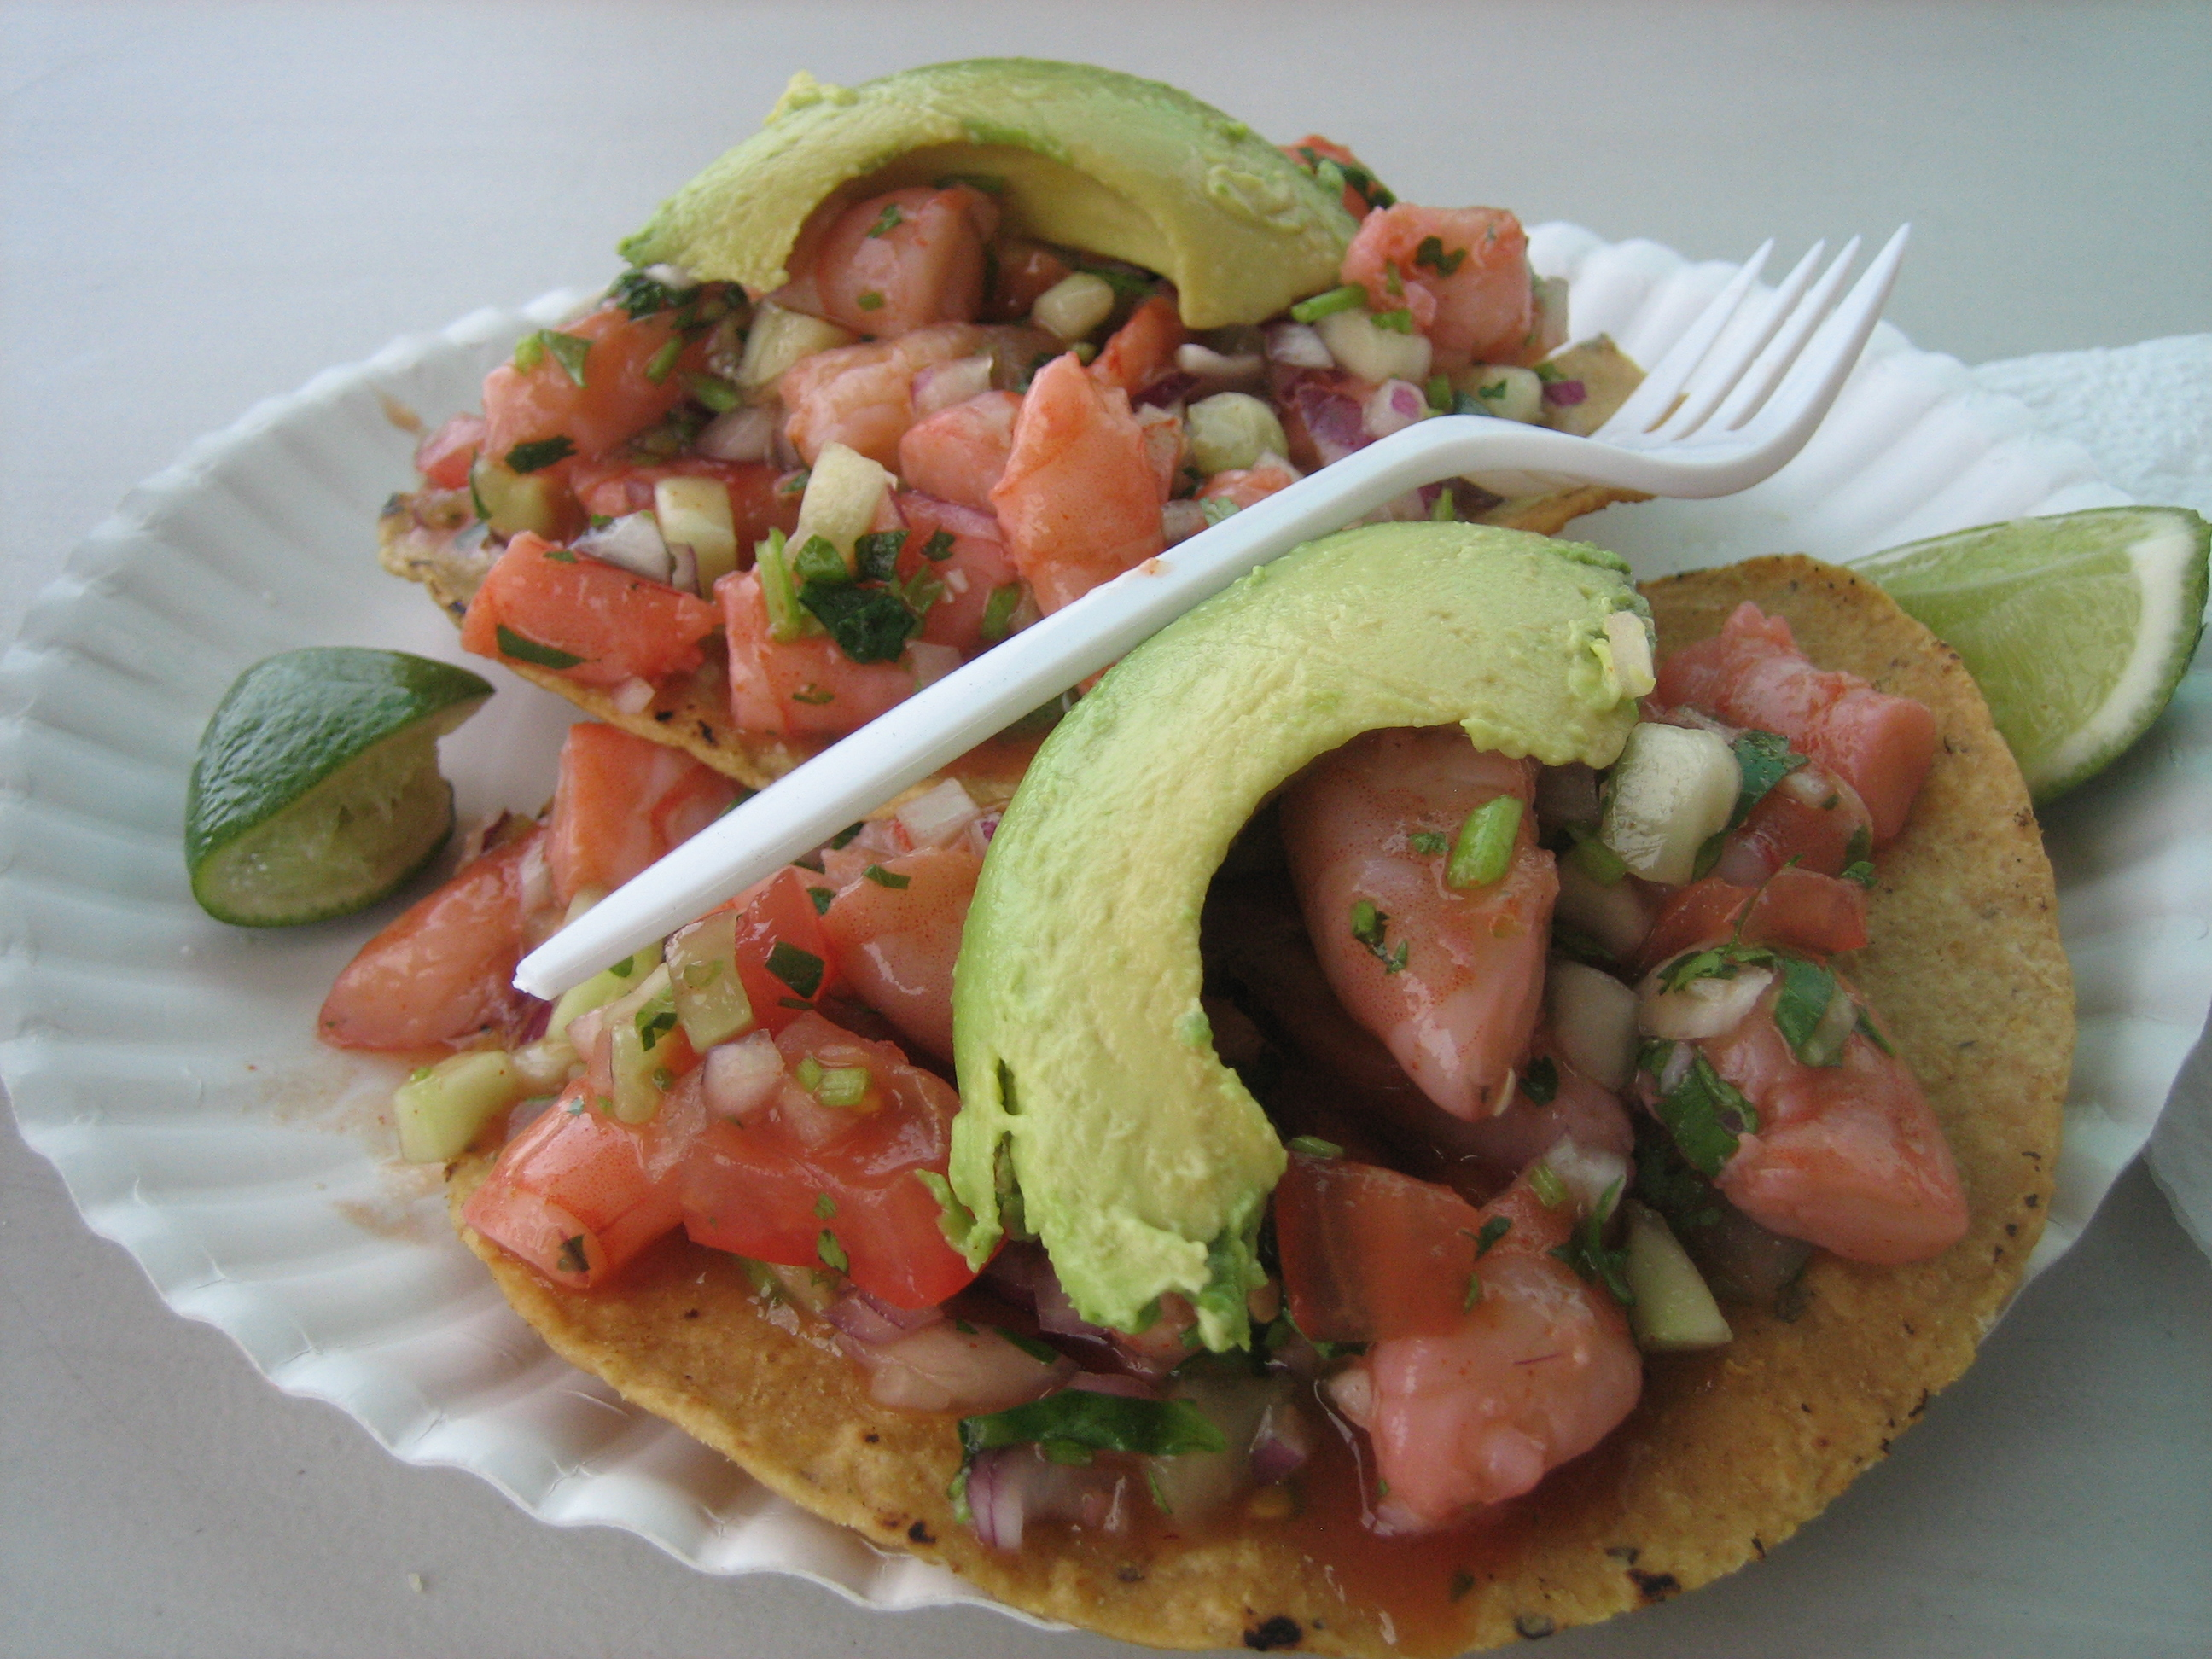 Tostada Wikipedia The Free Encyclopedia | 2016 Car Release Date